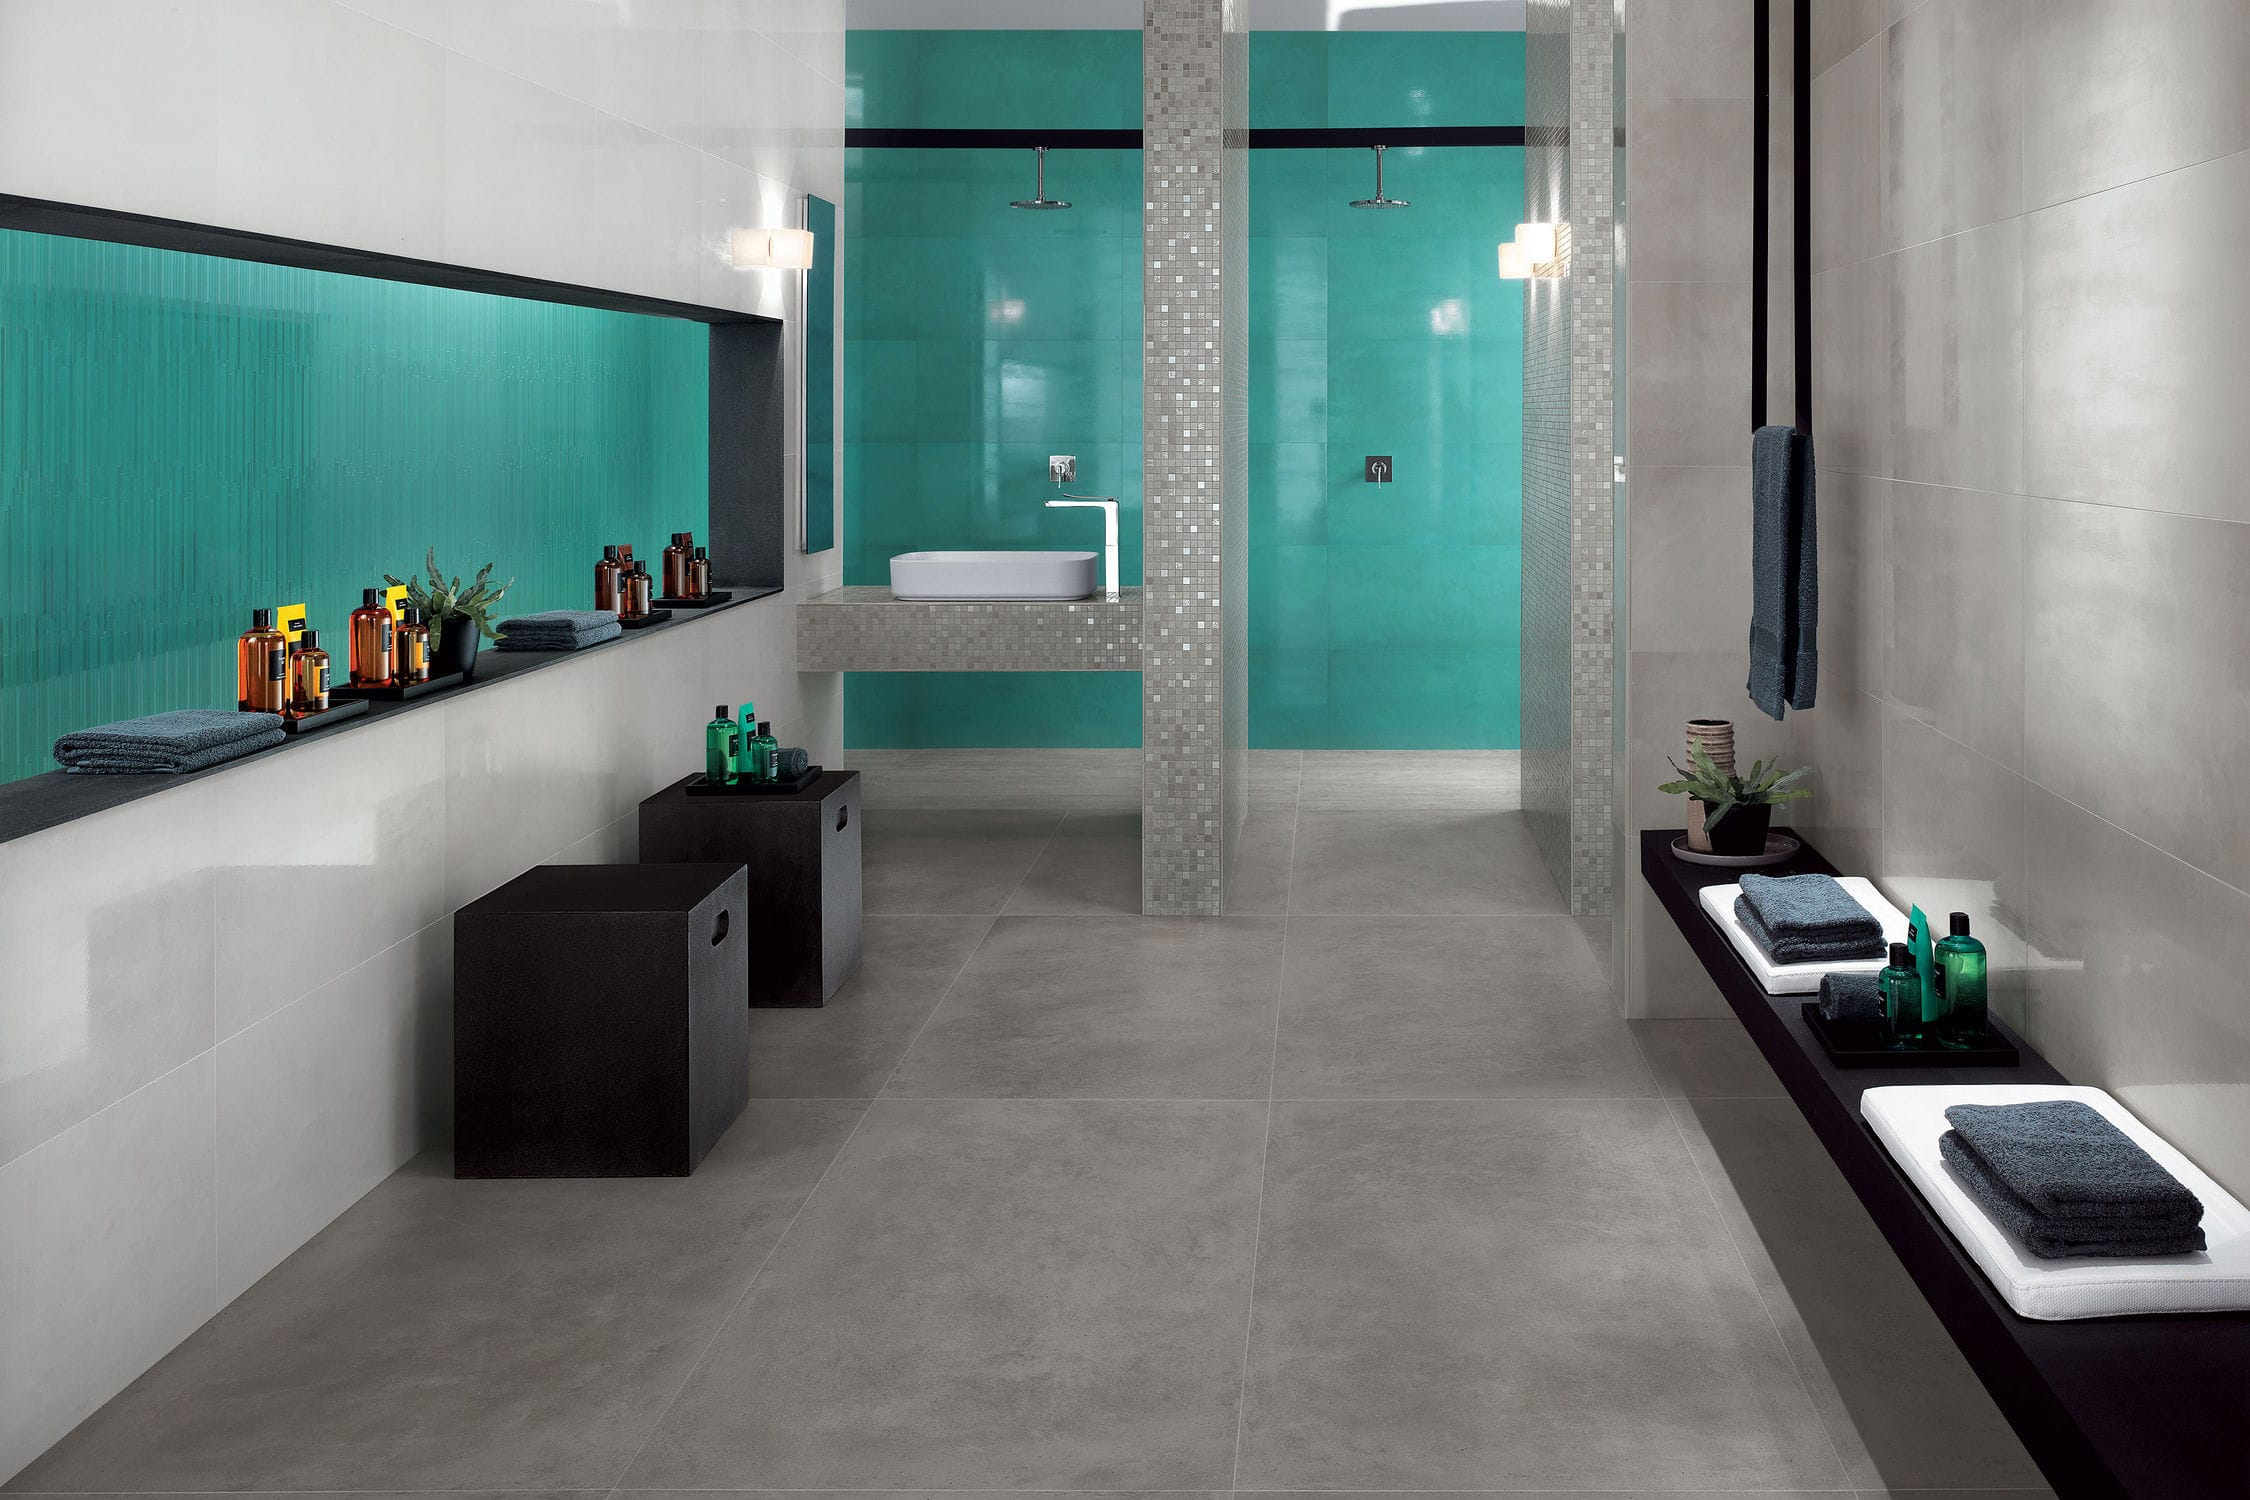 Indoor tile / floor / porcelain stoneware / plain - DWELL WALL ...